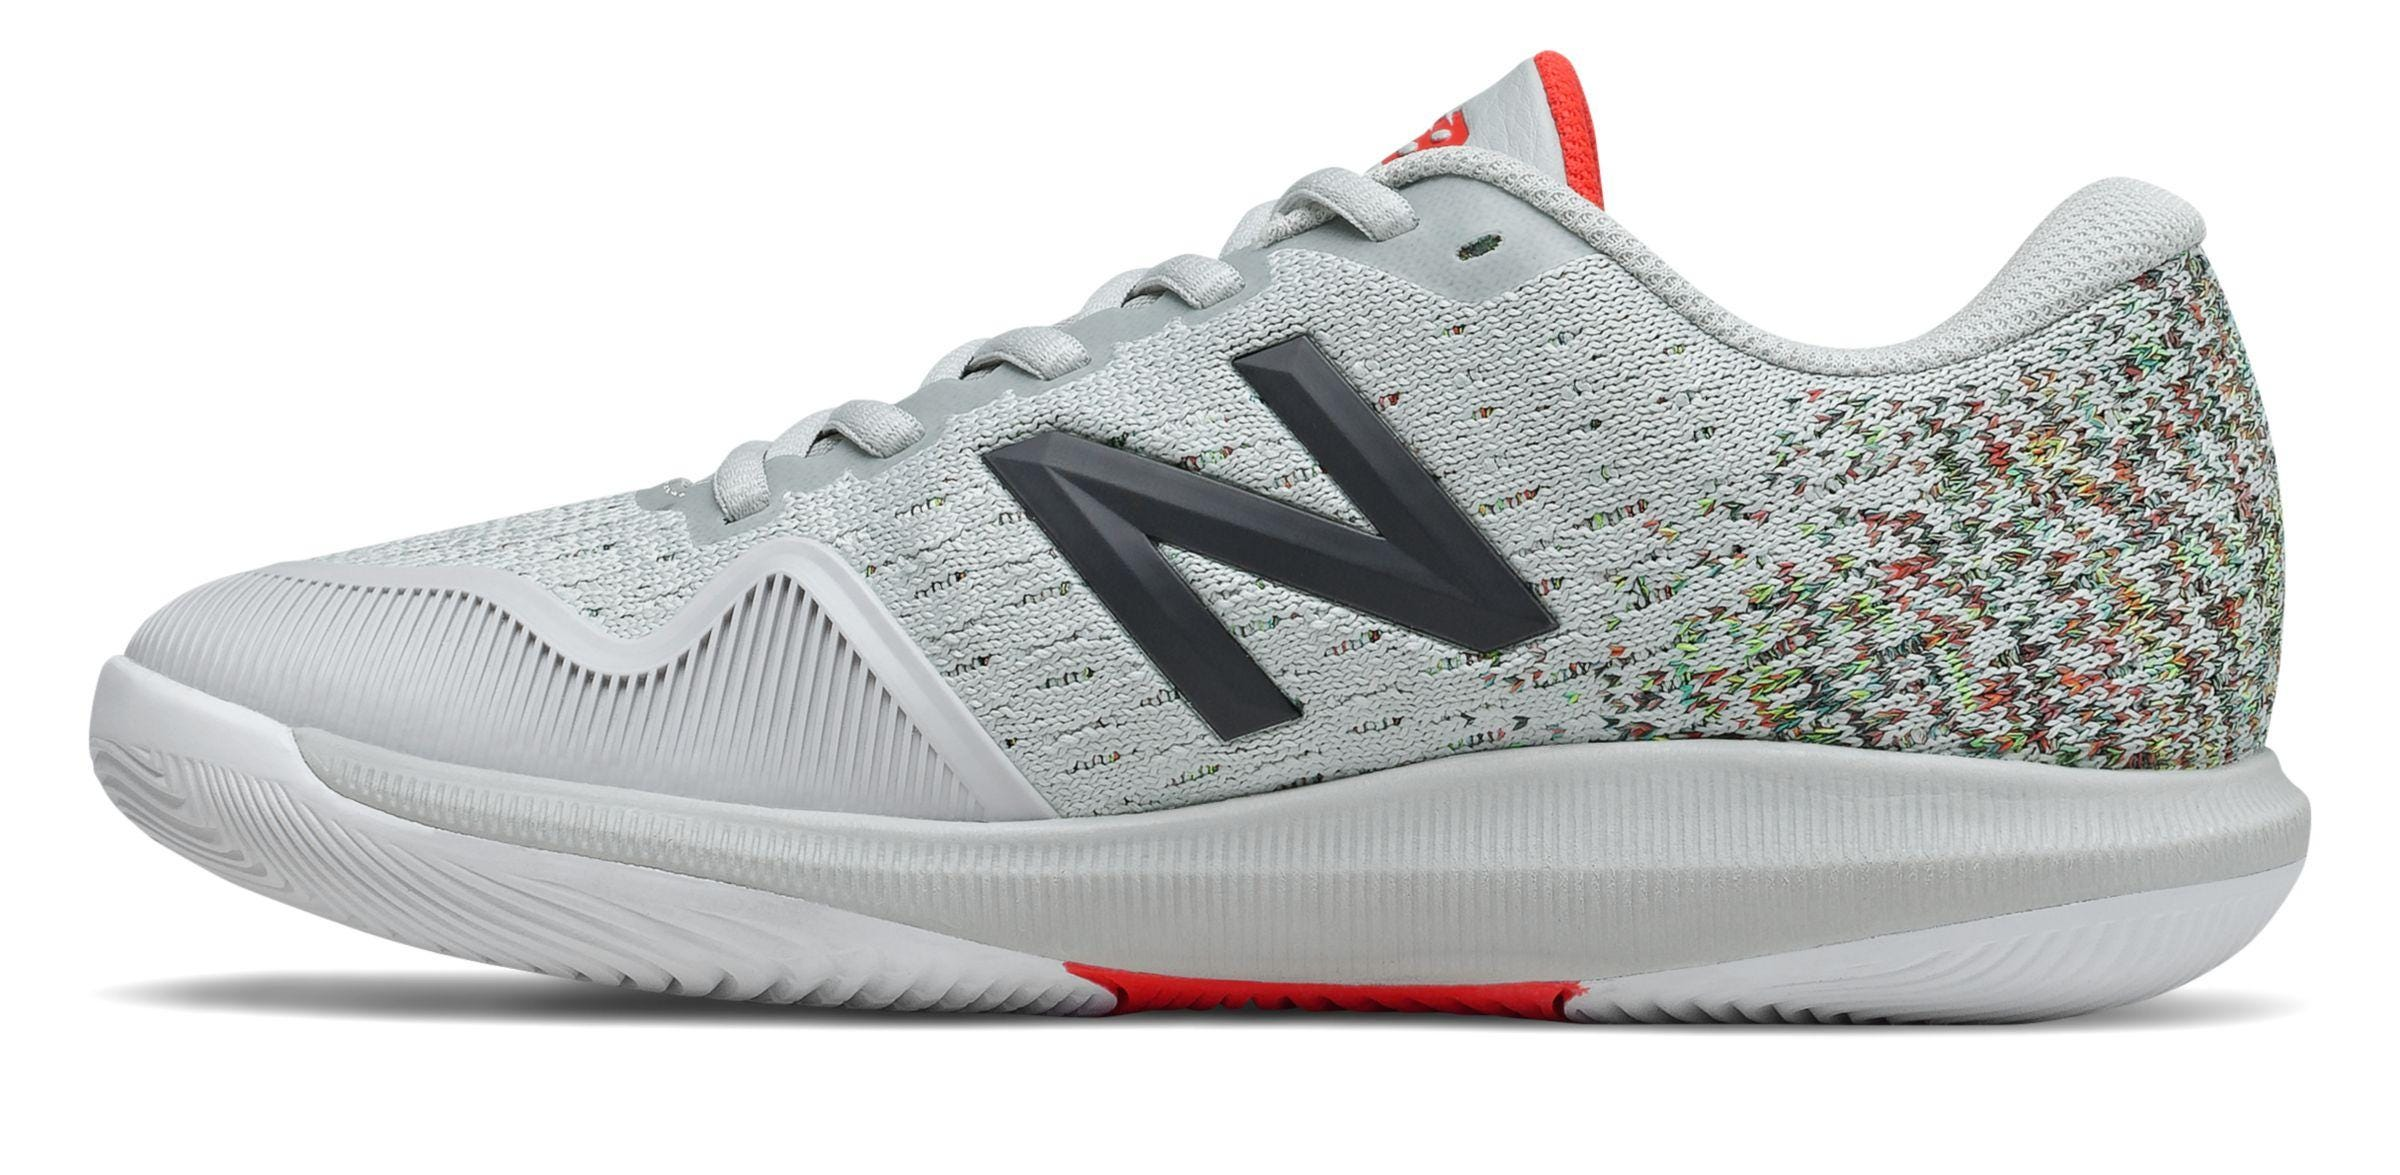 One New Balance Women's FuelCell 996 Hard Court Tennis Shoe in Gray-neon flame.